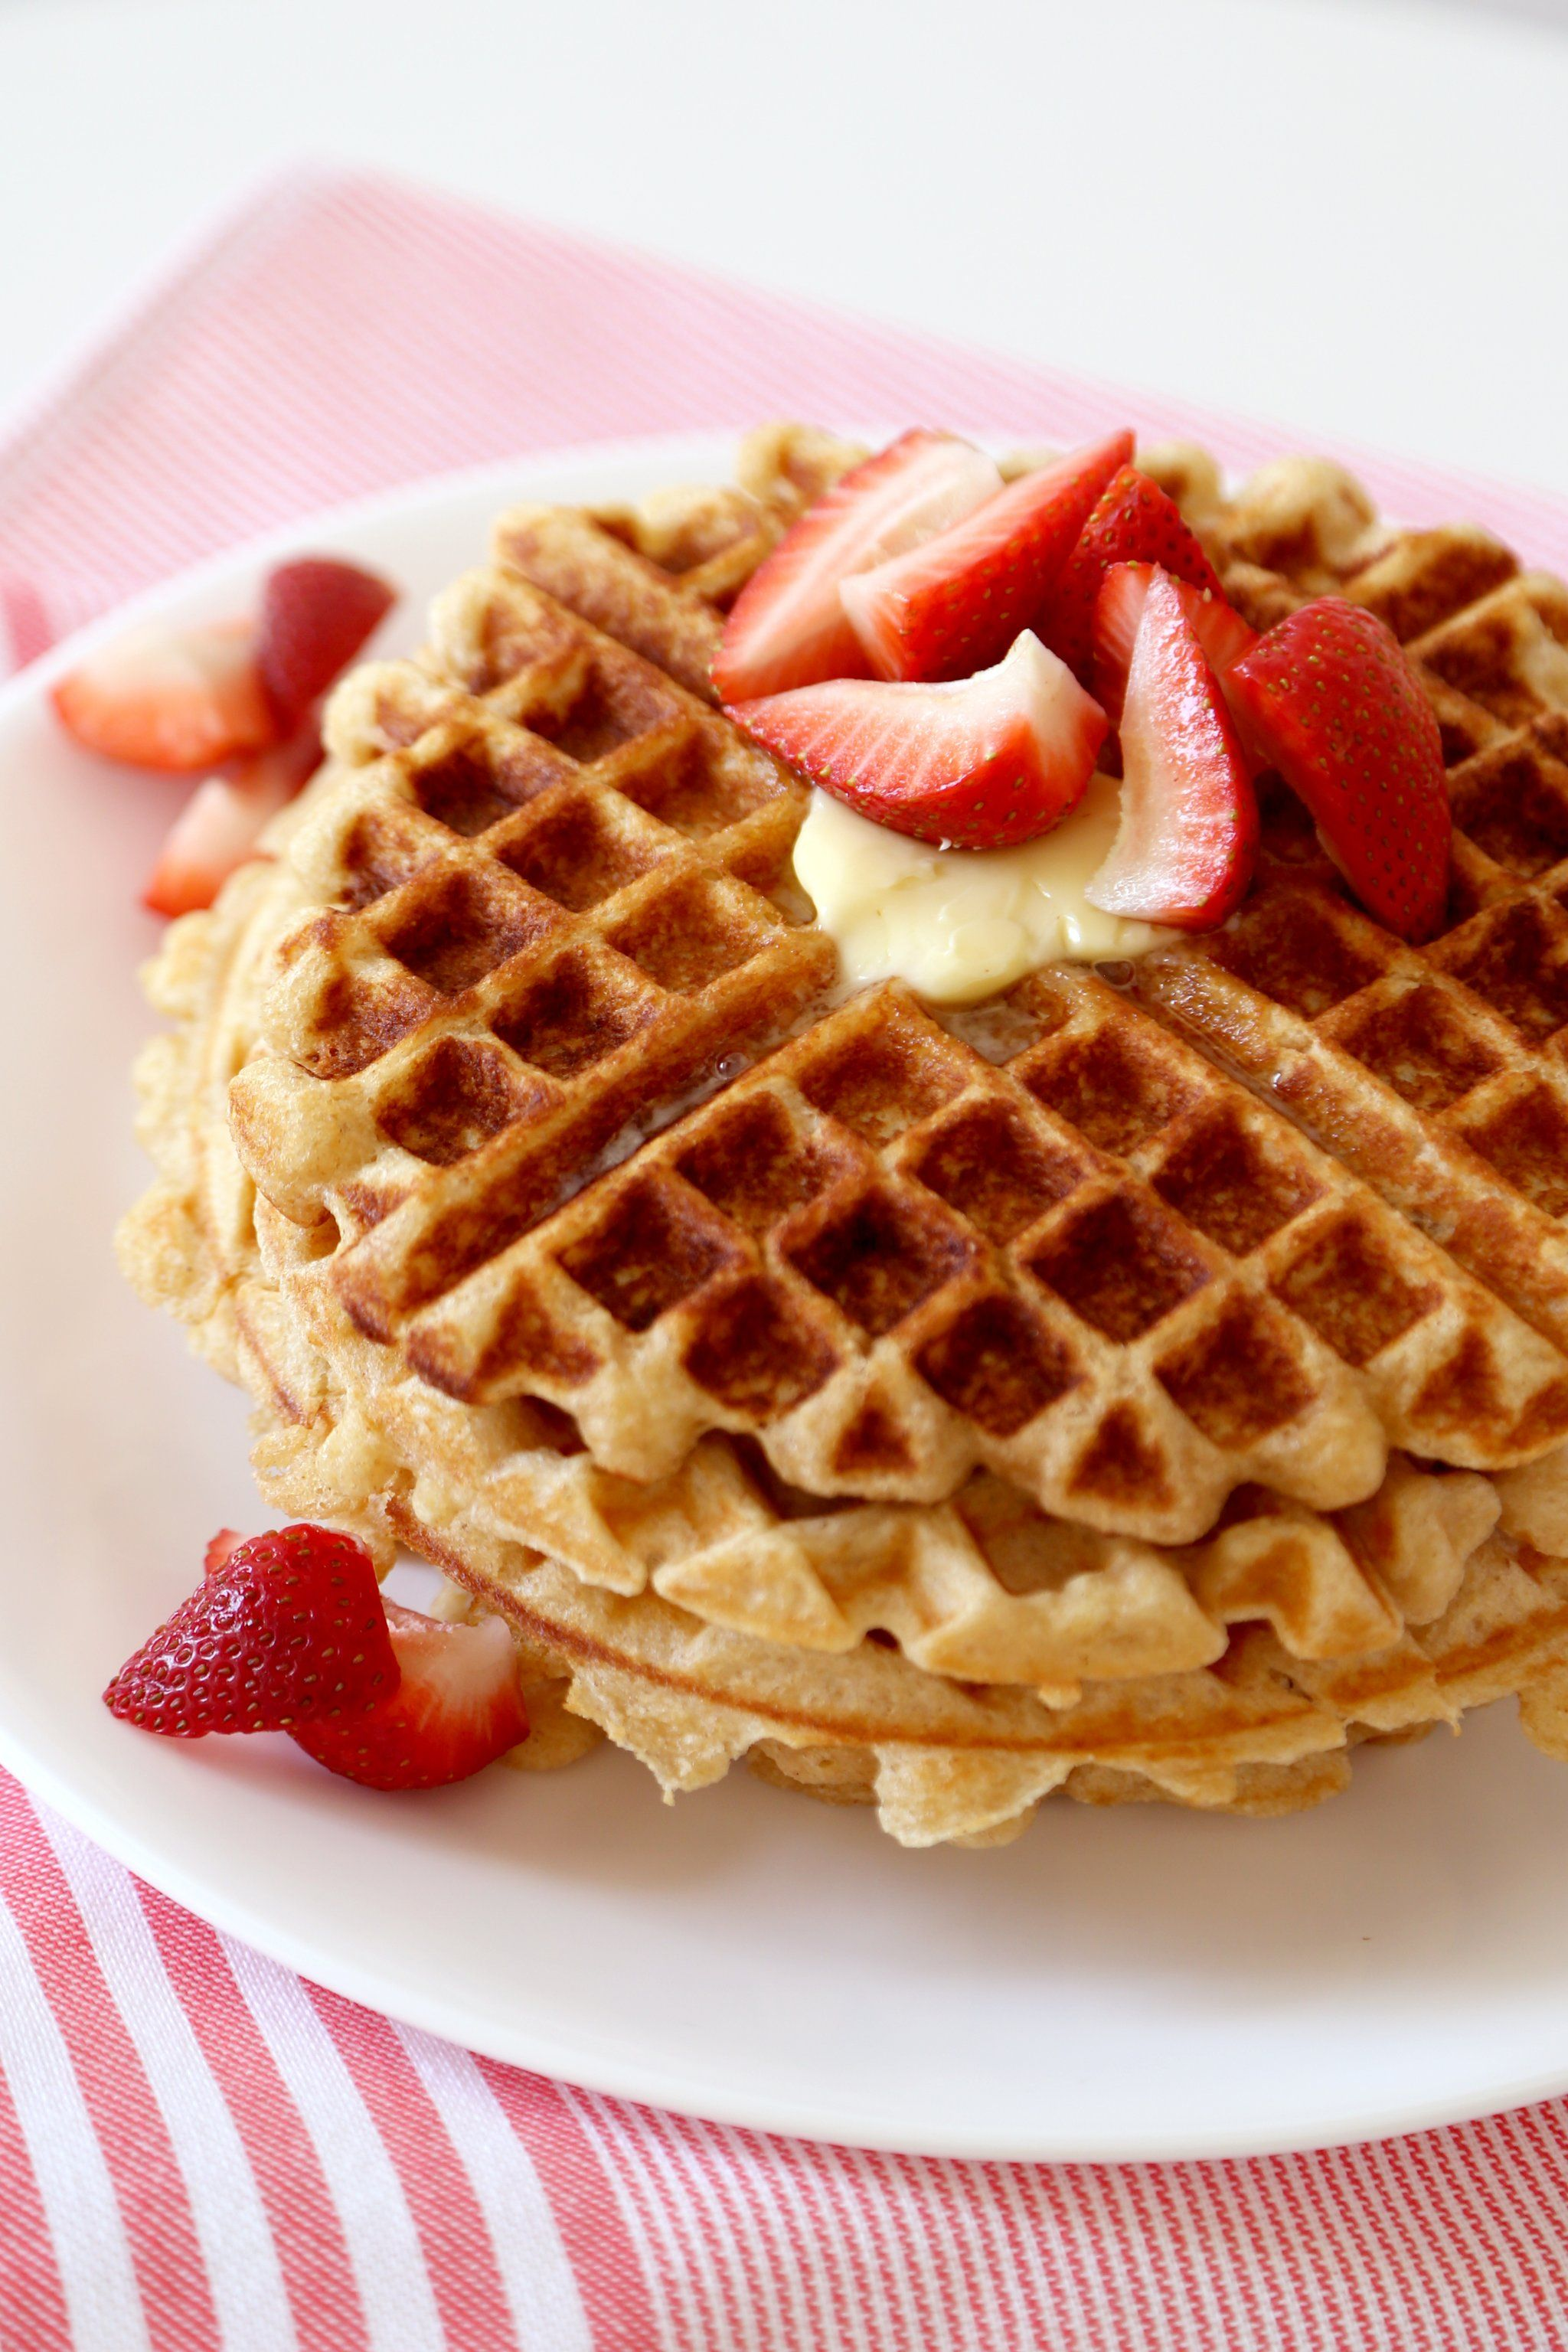 The Only Buttermilk Waffles Recipe You Ll Ever Need Recipe Buttermilk Waffles Recipe Waffle Recipes Buttermilk Waffles